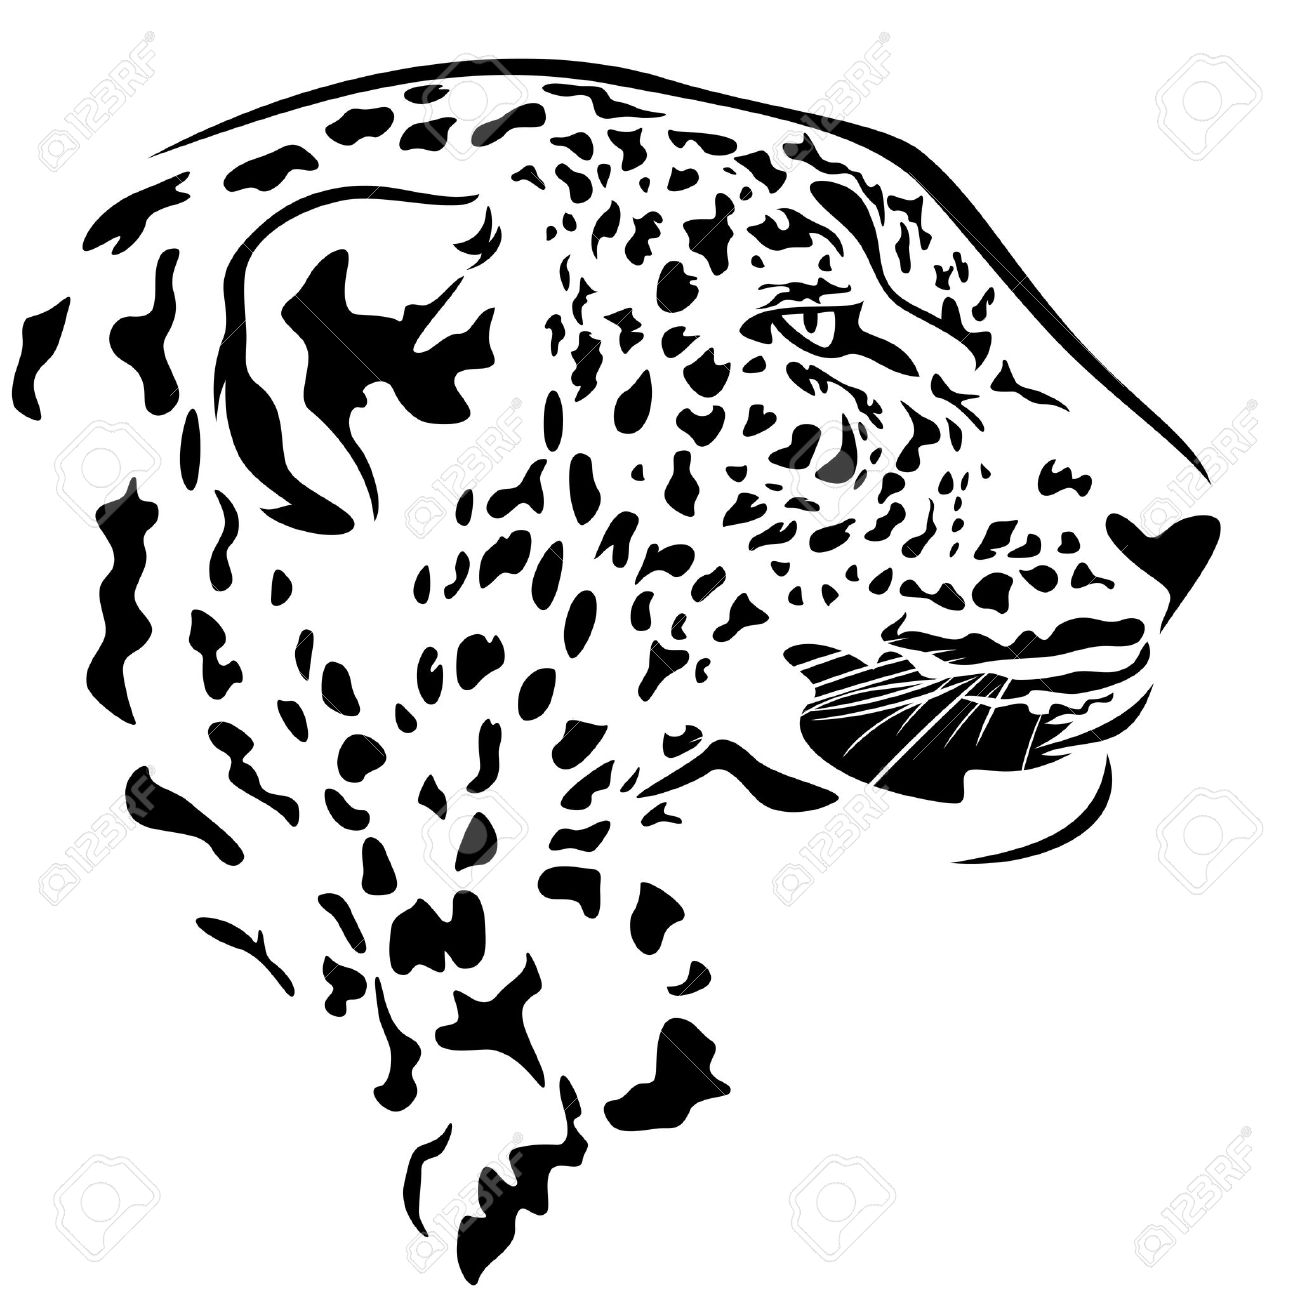 1300x1300 Snow Leopard Stock Photos. Royalty Free Business Images